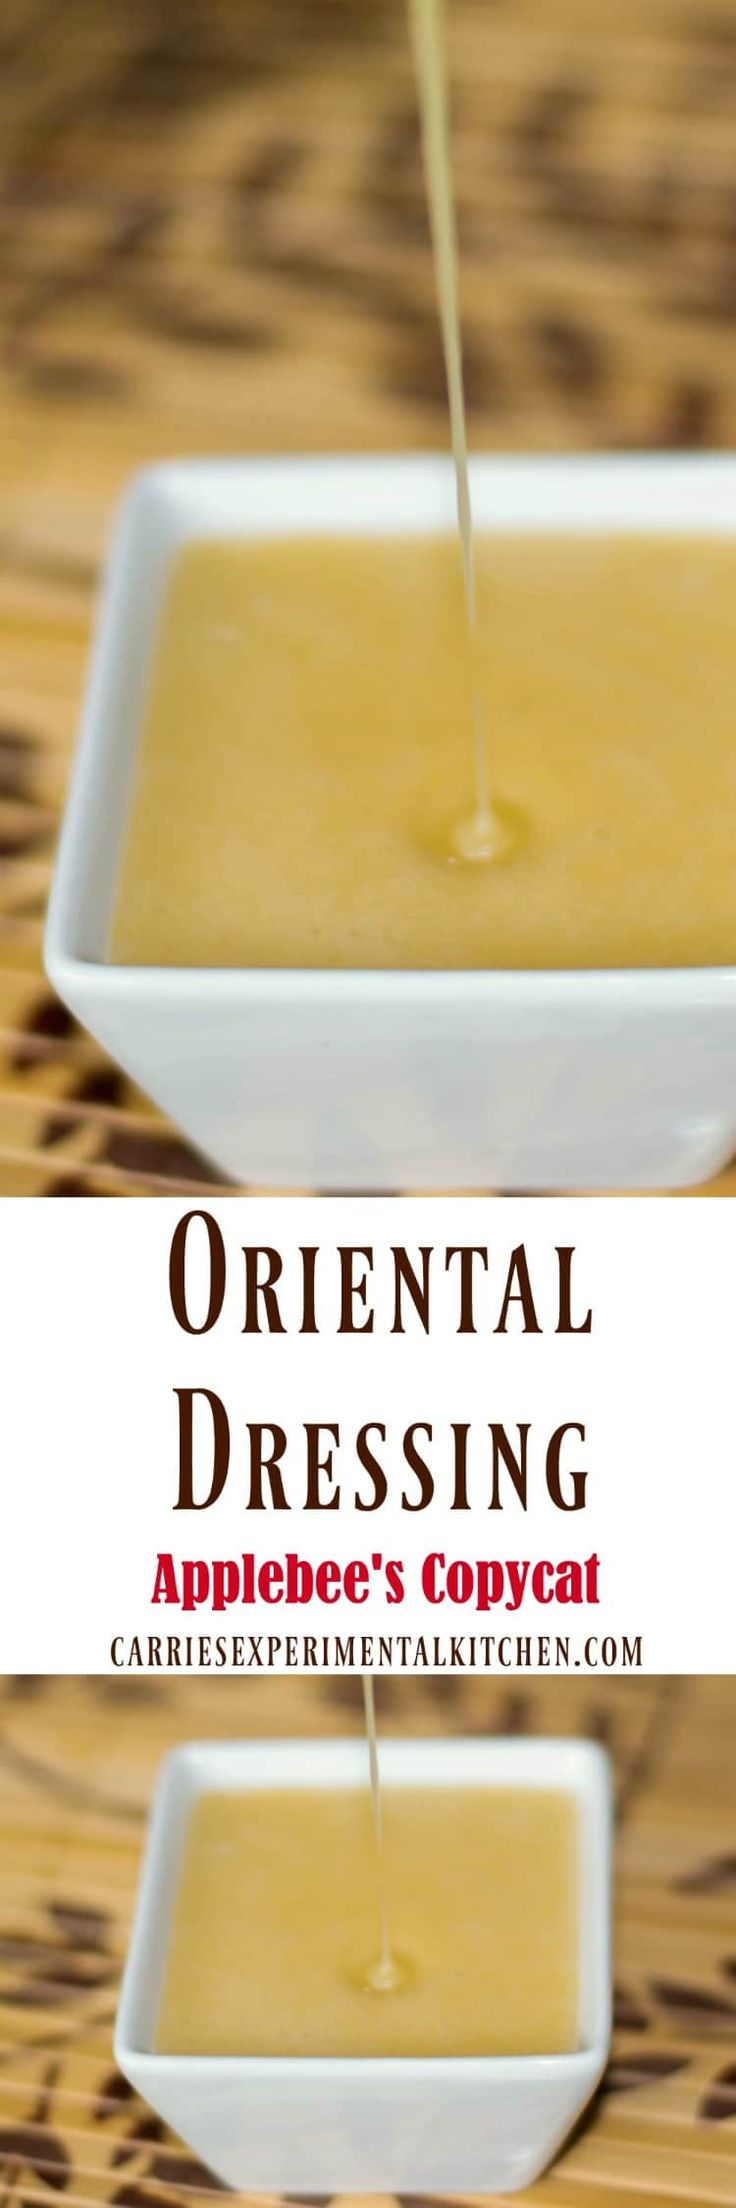 Make Applebee's Oriental Dressing in the comfort of your own home. It's perfect on salad or sandwiches and the family is going to love it!